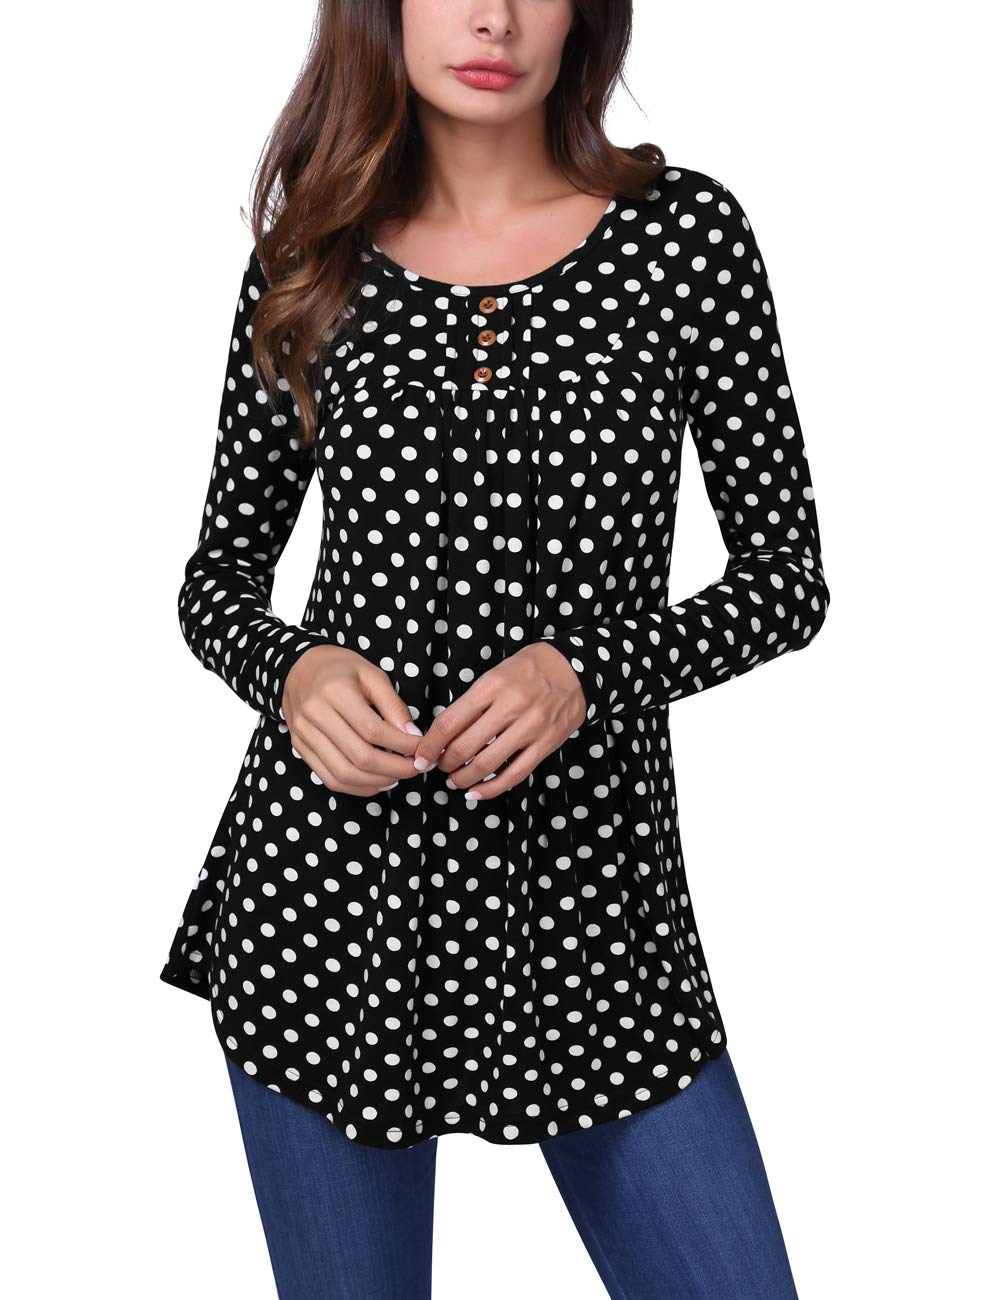 BaiShengGT Long Sleeve T Shirts Tunic Tops, Women's Crewneck Long Sleeve Floral Shirts Flared Casual Tunic Tops X-Large Black Polka Dot